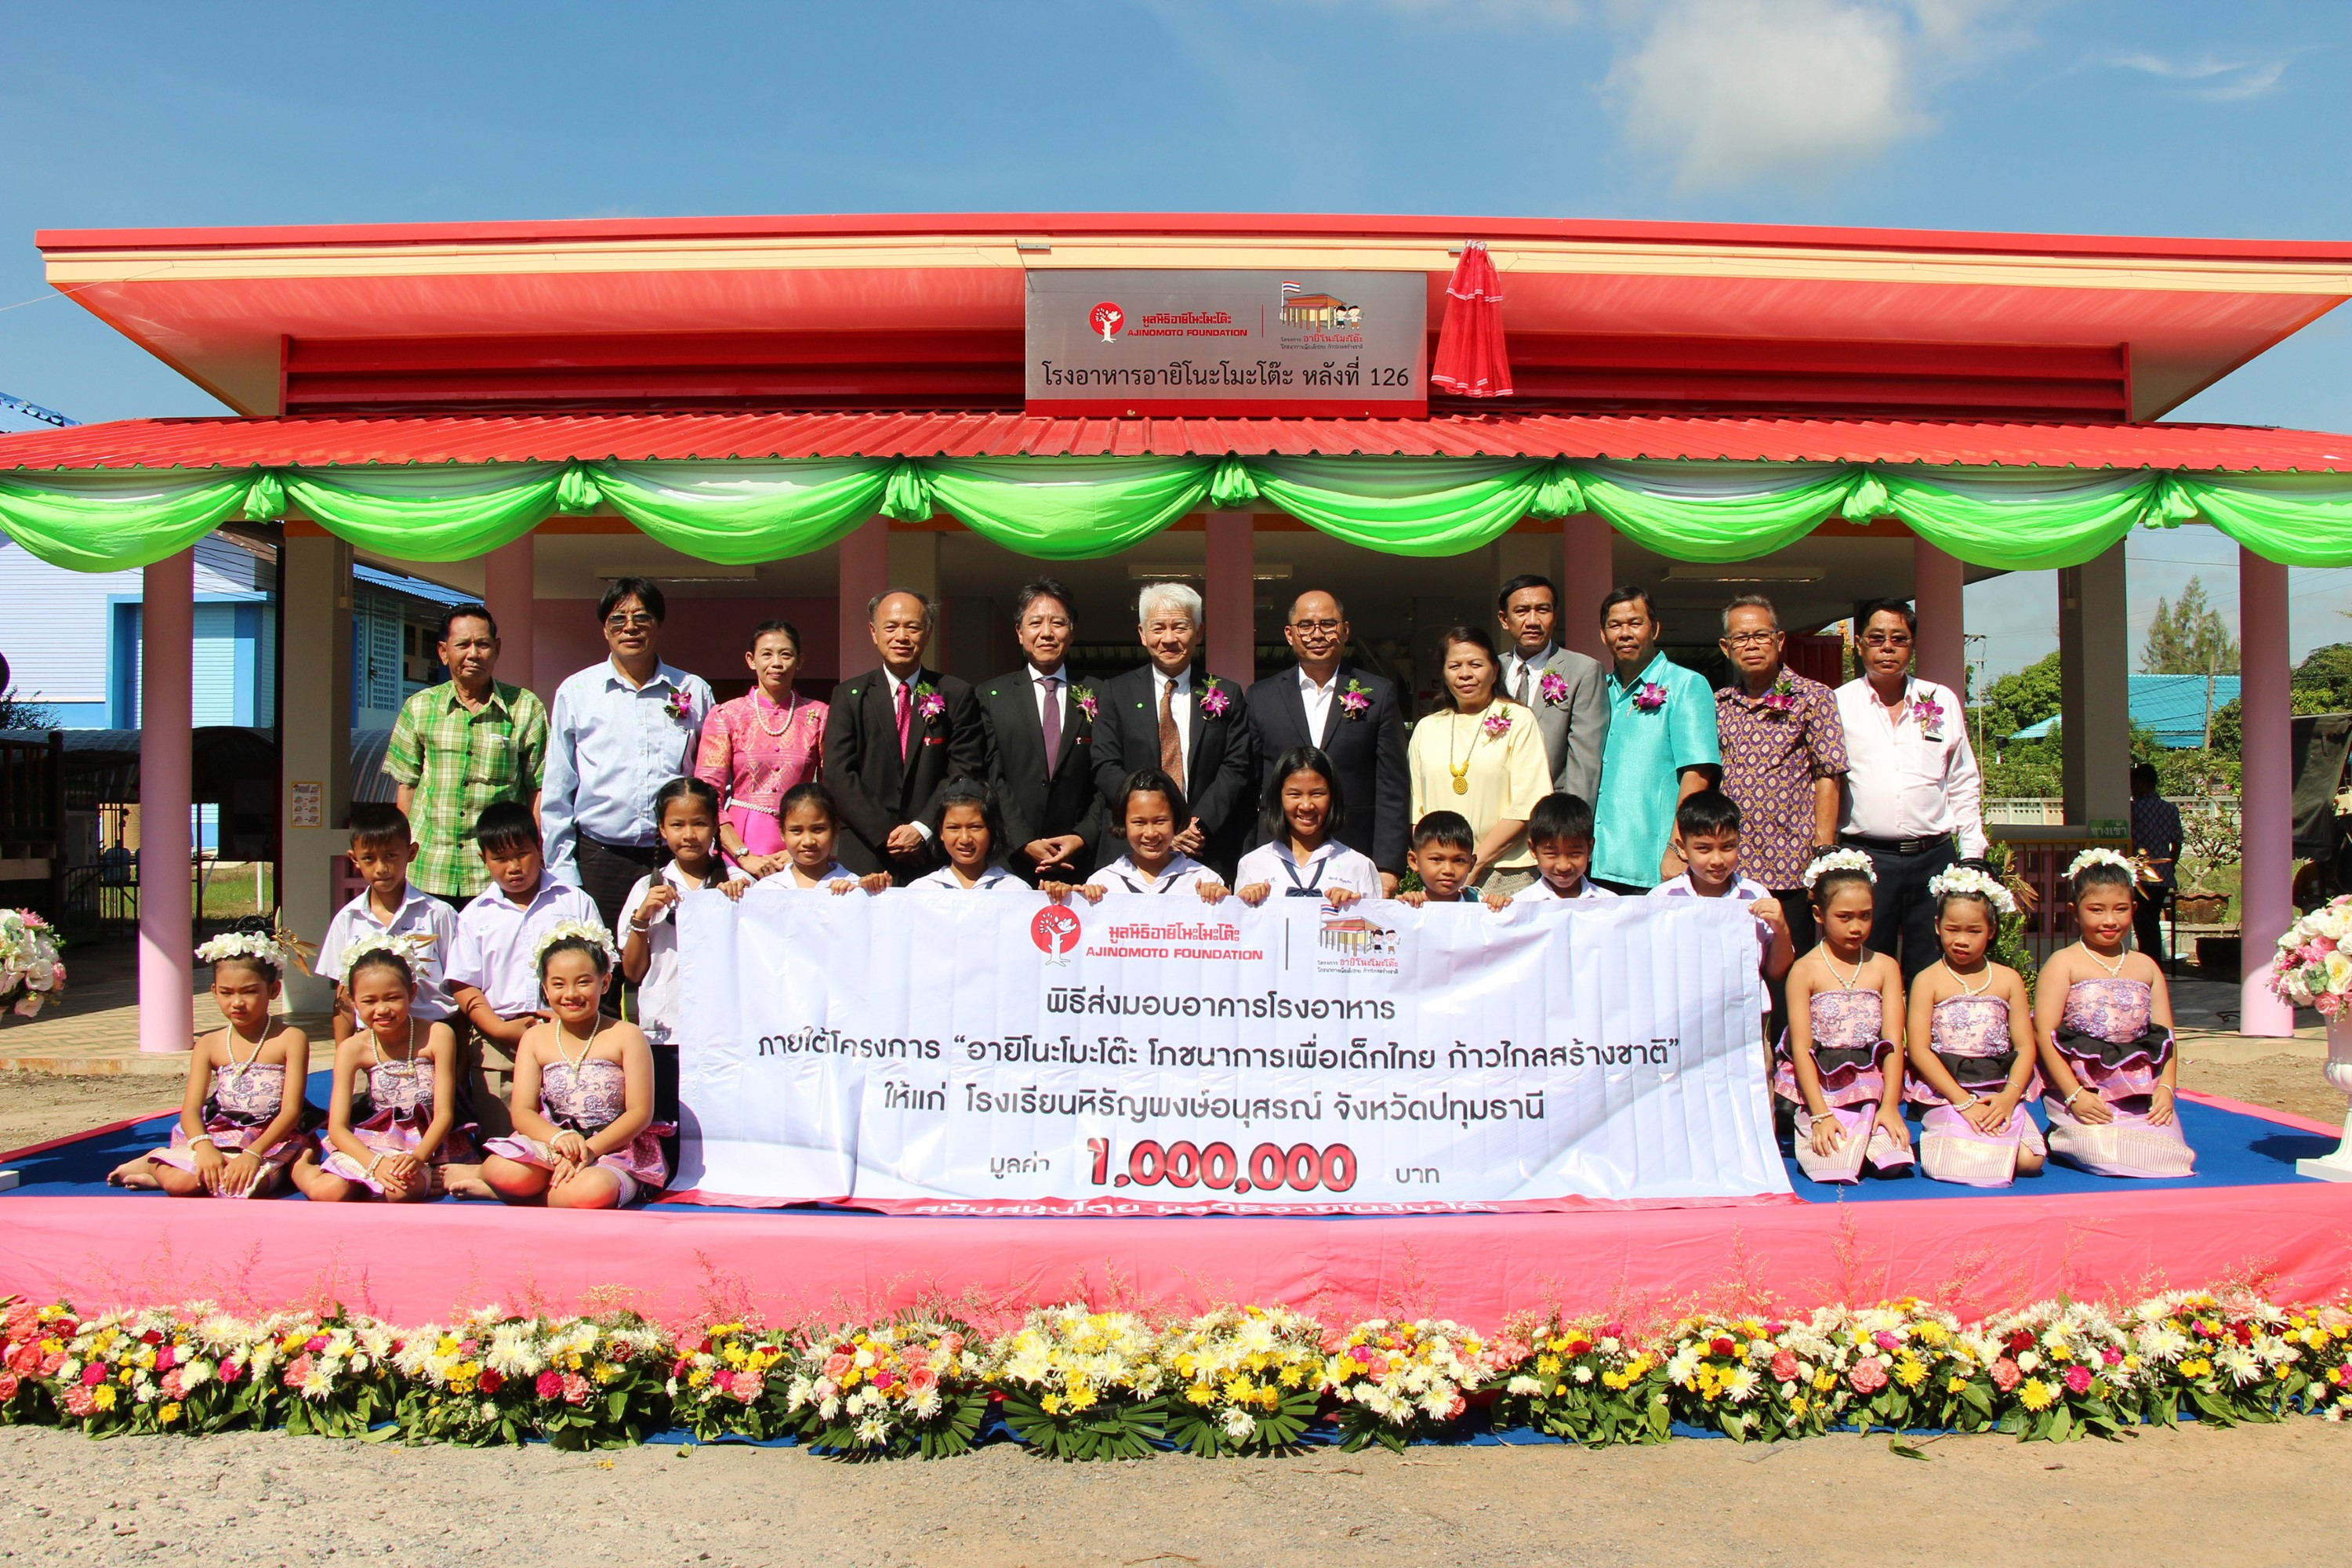 Ajinomoto Foundation delivers standard canteen No. 126